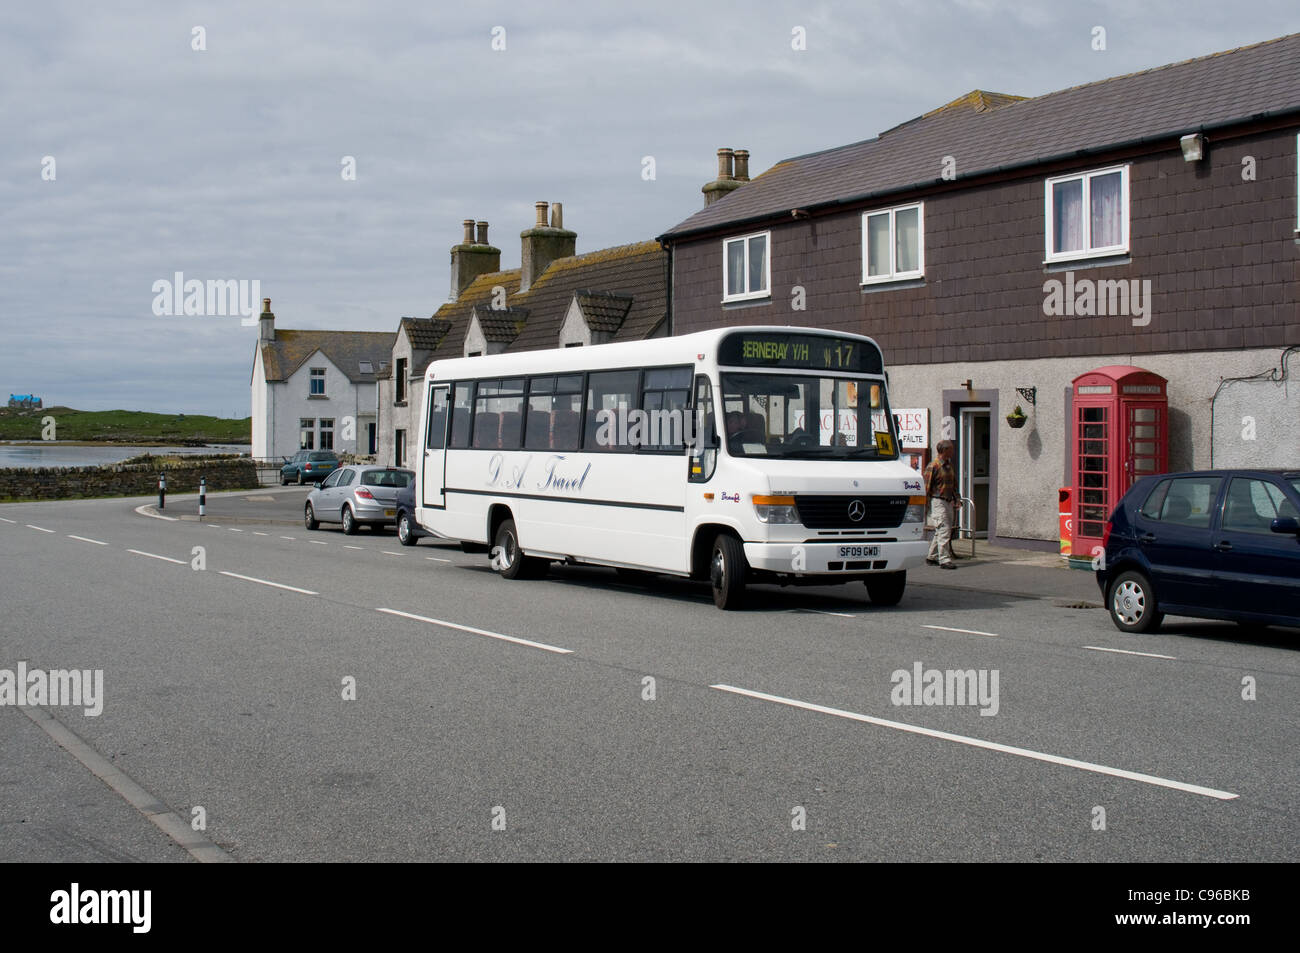 A Mercedes-Benz minibus operated by D A travel waites in Berneray before continuing its journey. - Stock Image